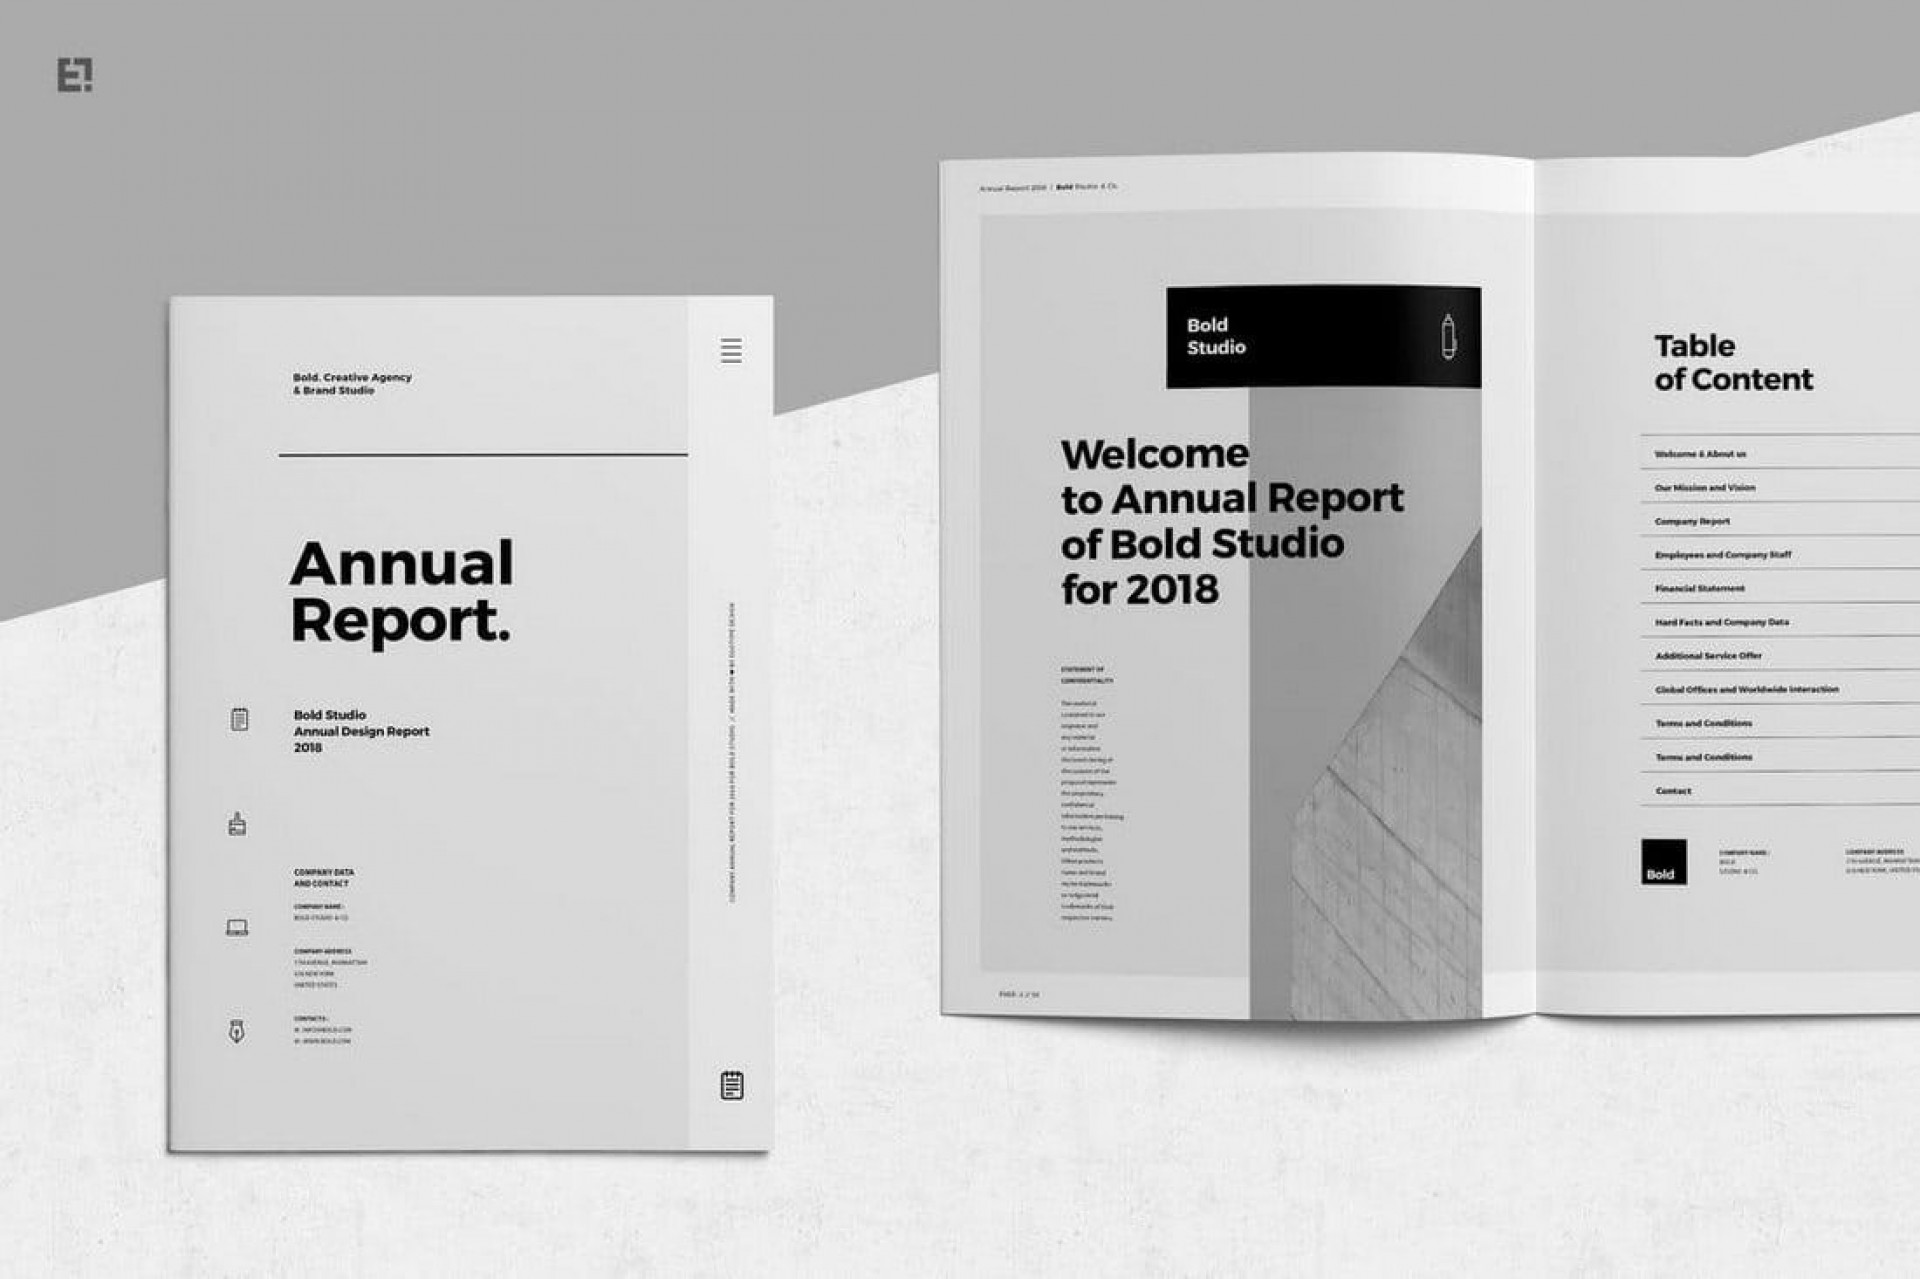 003 Impressive Annual Report Template Word Picture  Performance Rbi Format Ngo In Doc1920